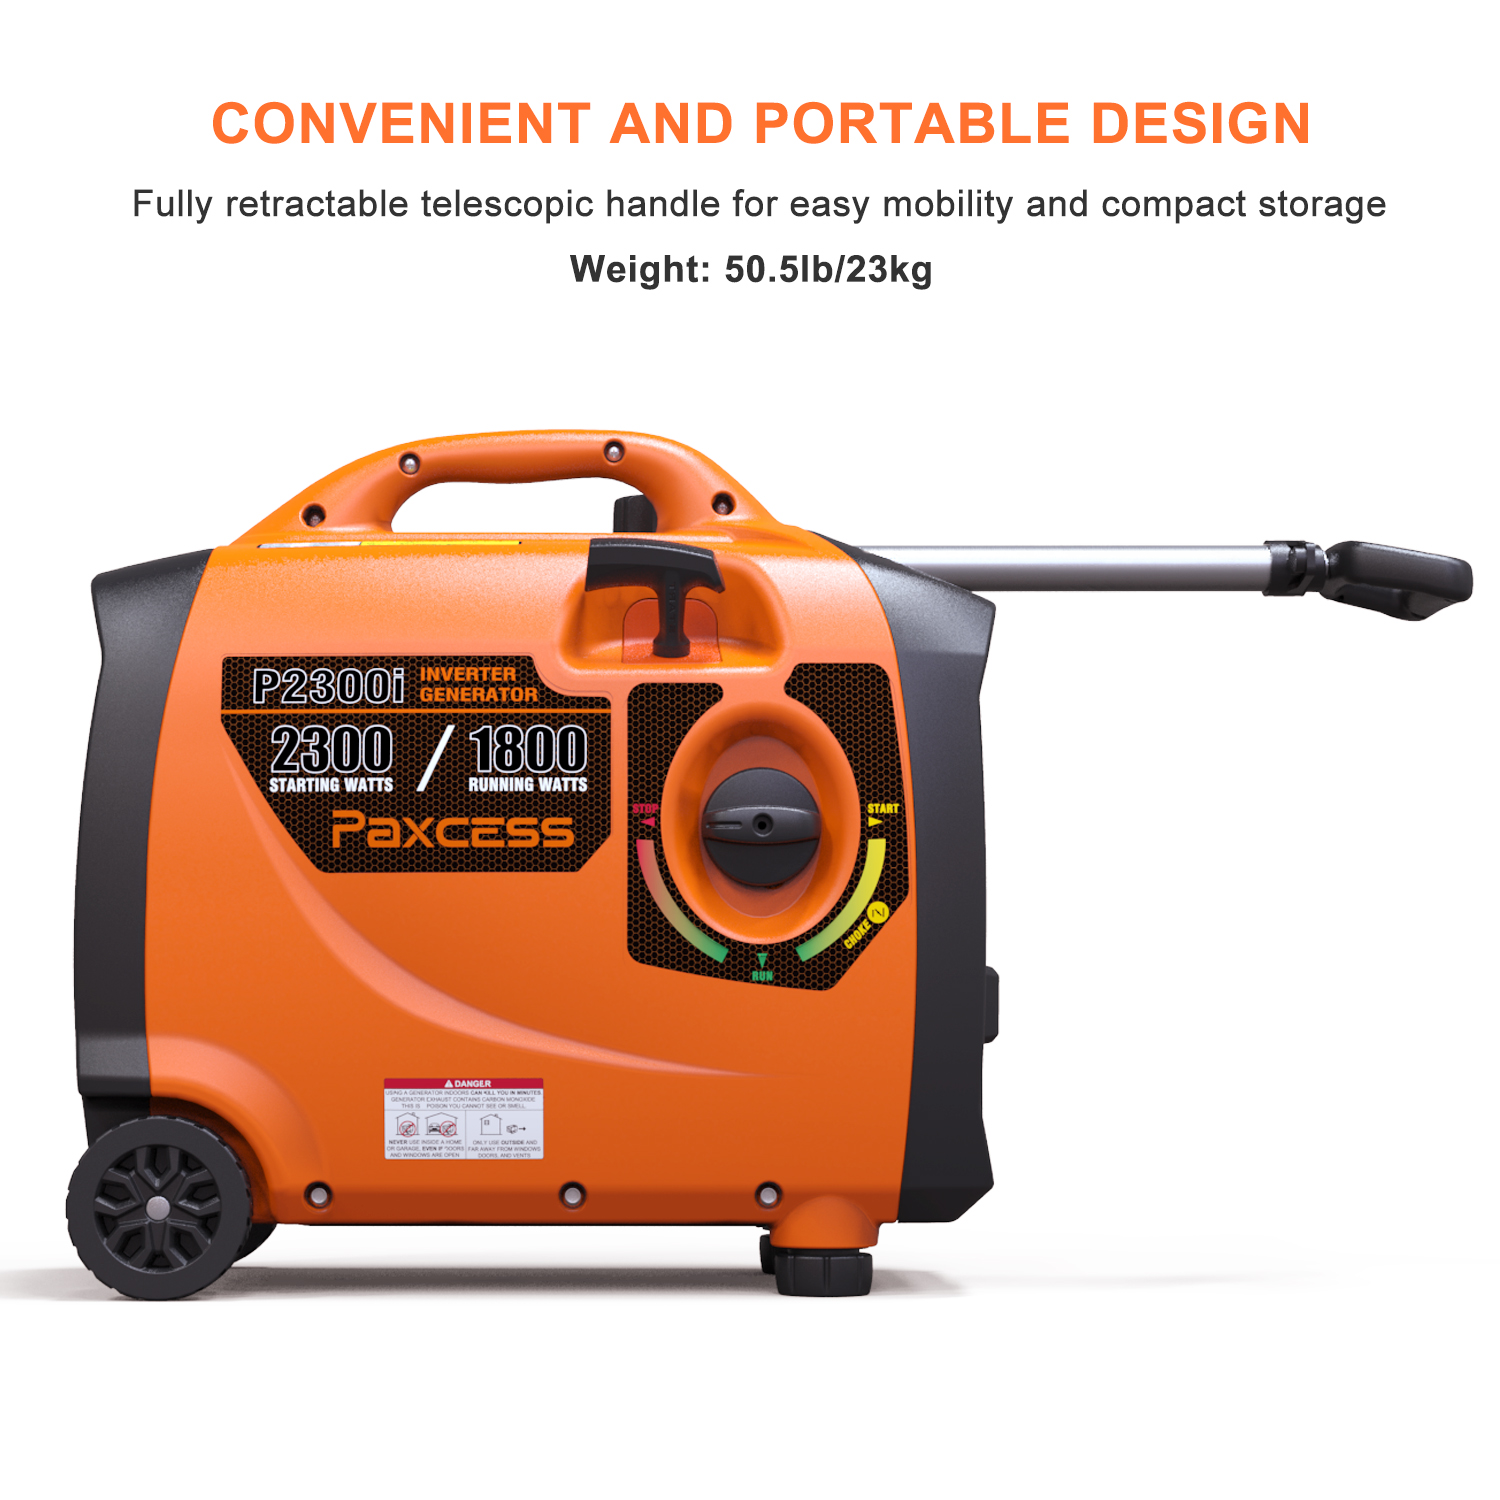 Paxcess 2300 Watts Portable Generator Parallel Ready Inverter Generator With Wheel and Handle RV Ready Generator CARB Complaint For HOME, Camping, Travel, Emergency.